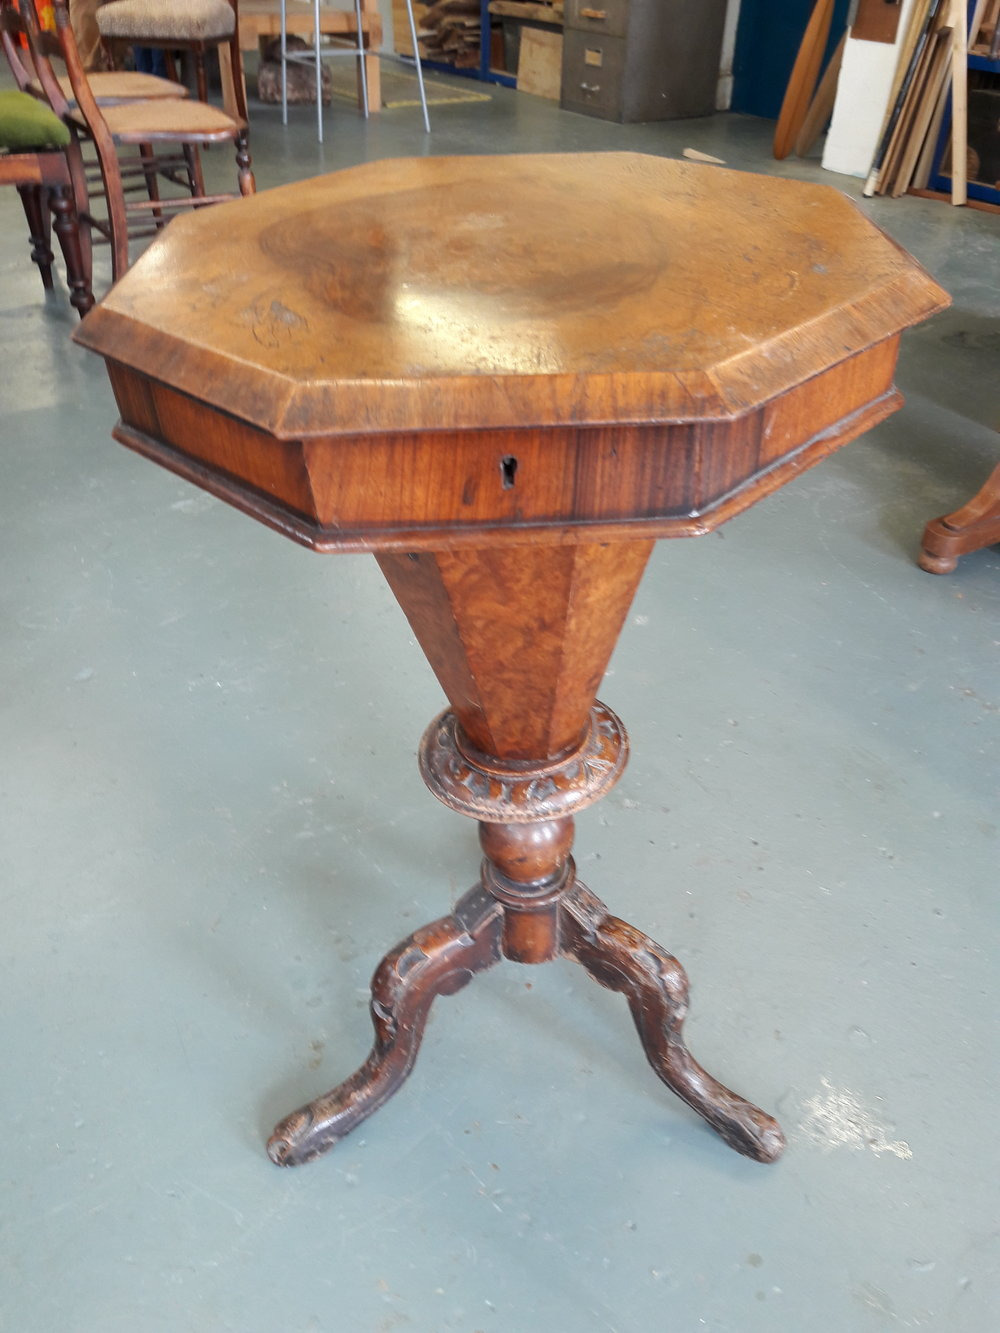 Charlotte M Prothero Before Restoration Antique Sewing Table 1